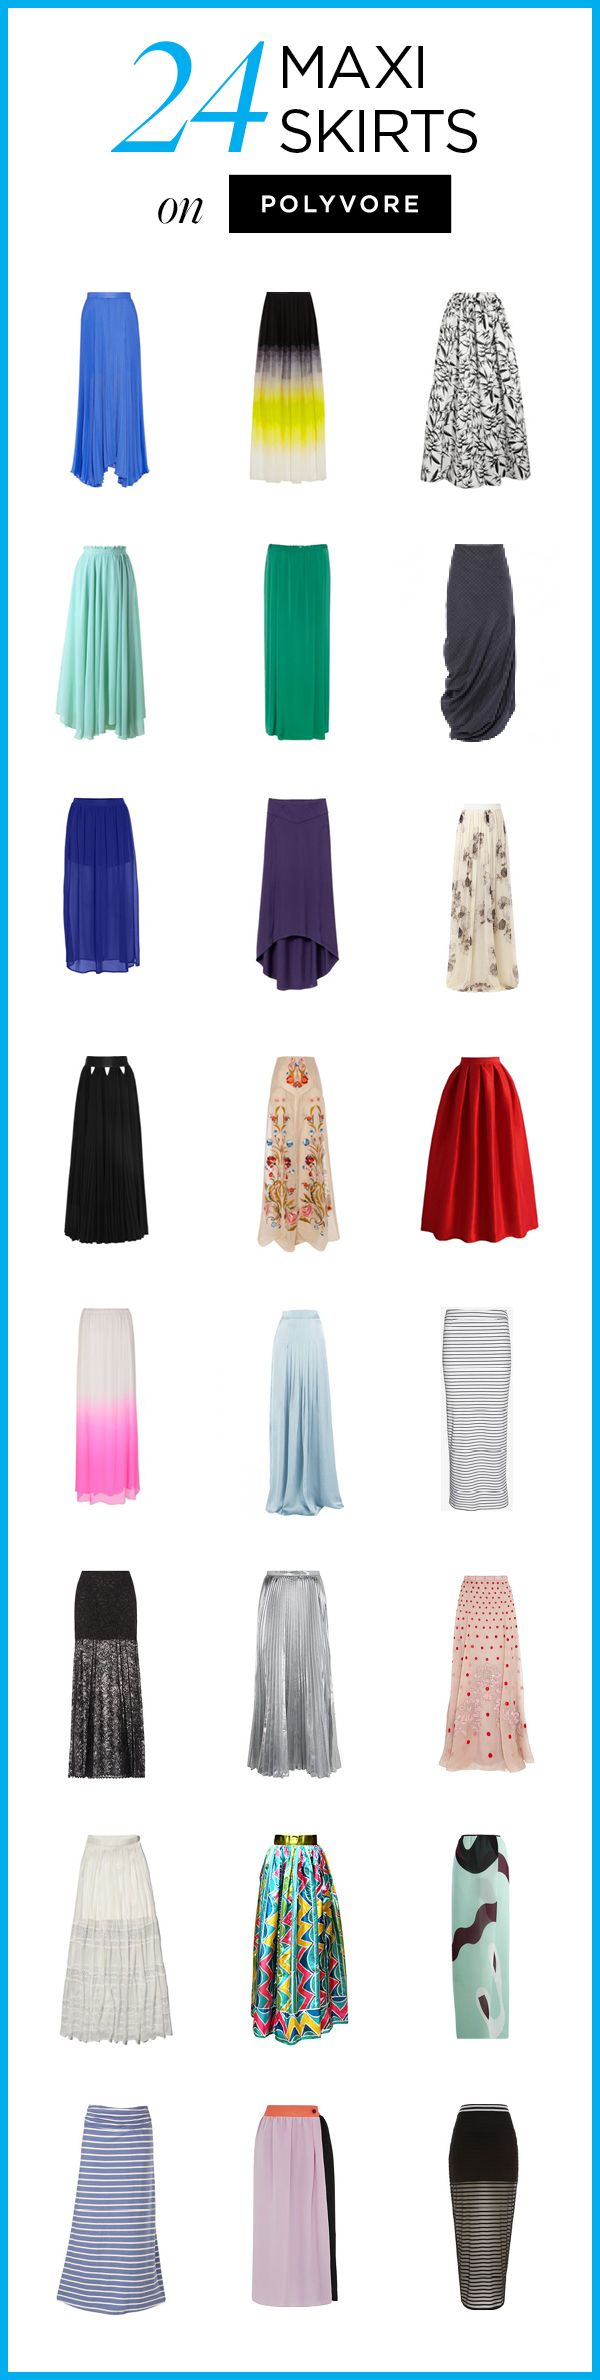 24 Maxi Skirts on Polyvore! Shop all long, lovely skirt styles to find a look you love: http://polyv.re/MaxiSkirts